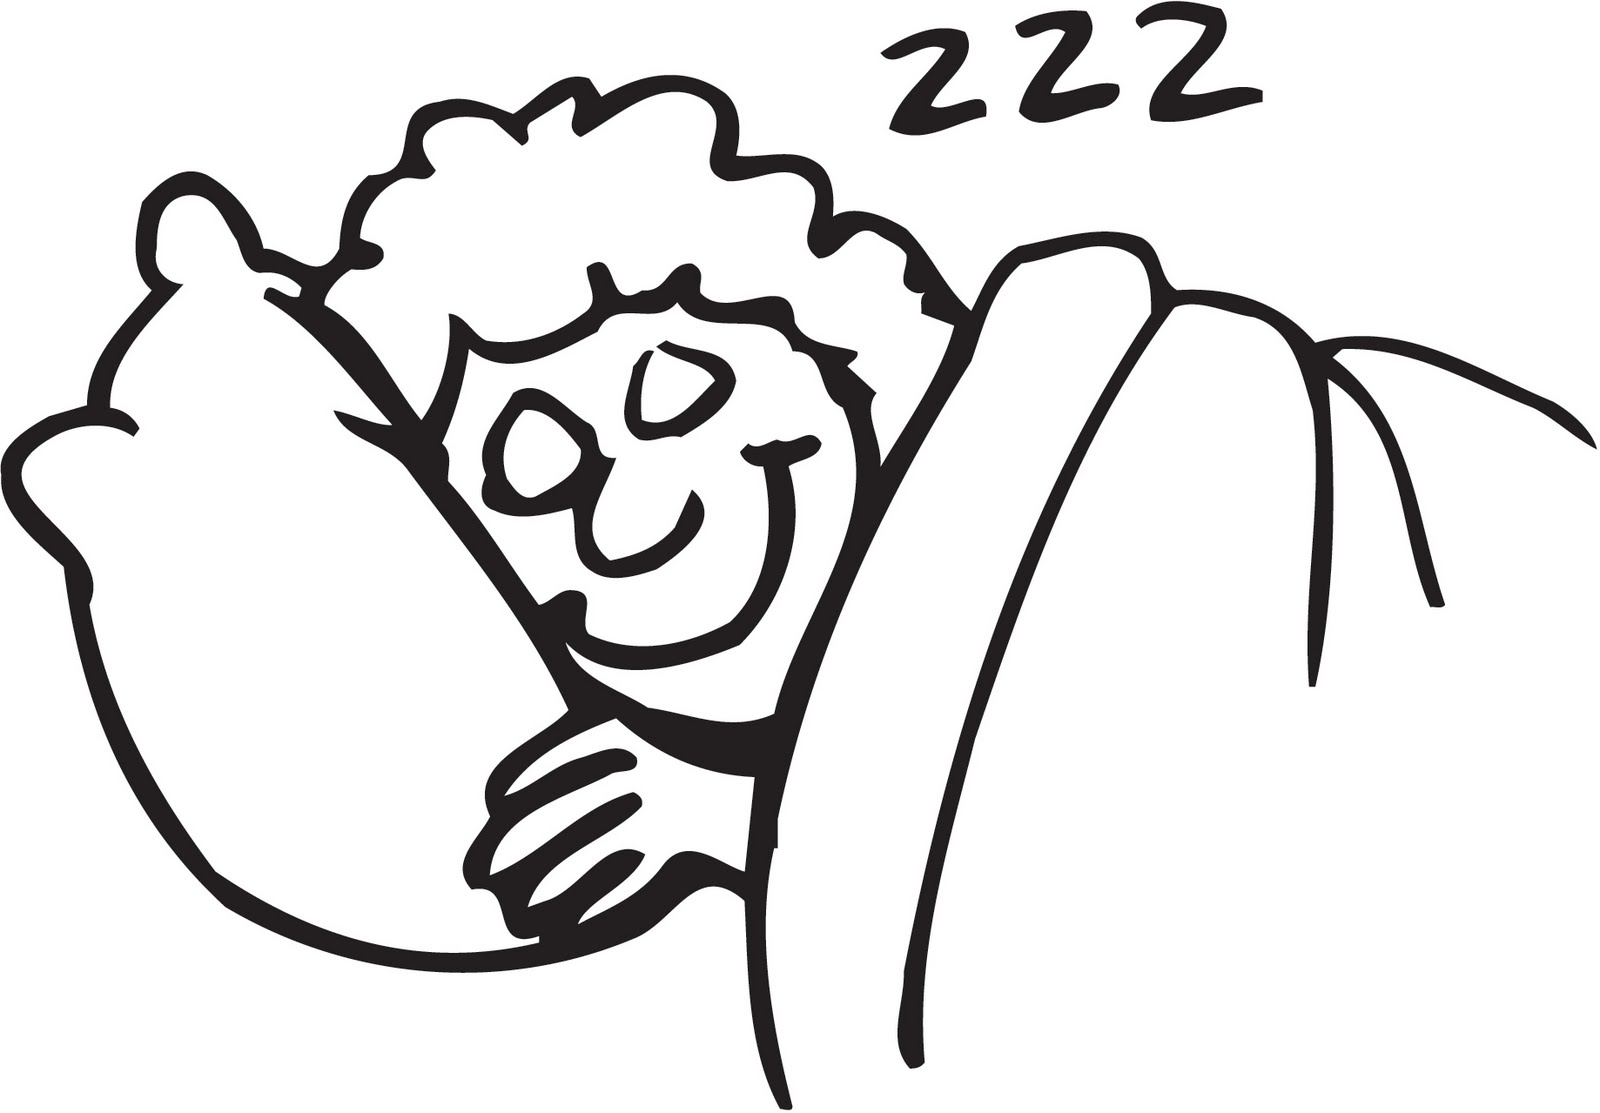 Free Sleep Cliparts, Download Free Clip Art, Free Clip Art.